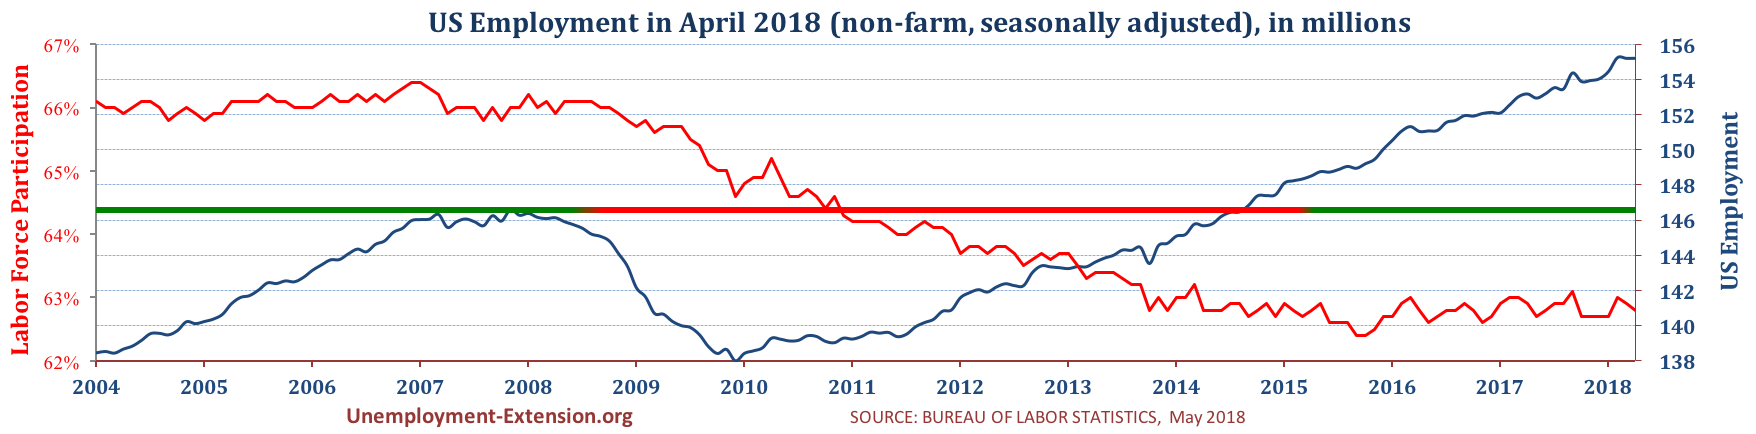 Total US Employment (non-farm, seasonally adjusted) in April of 2018. US economy has lost approximately 10 million jobs in comparison to pre-resession level.